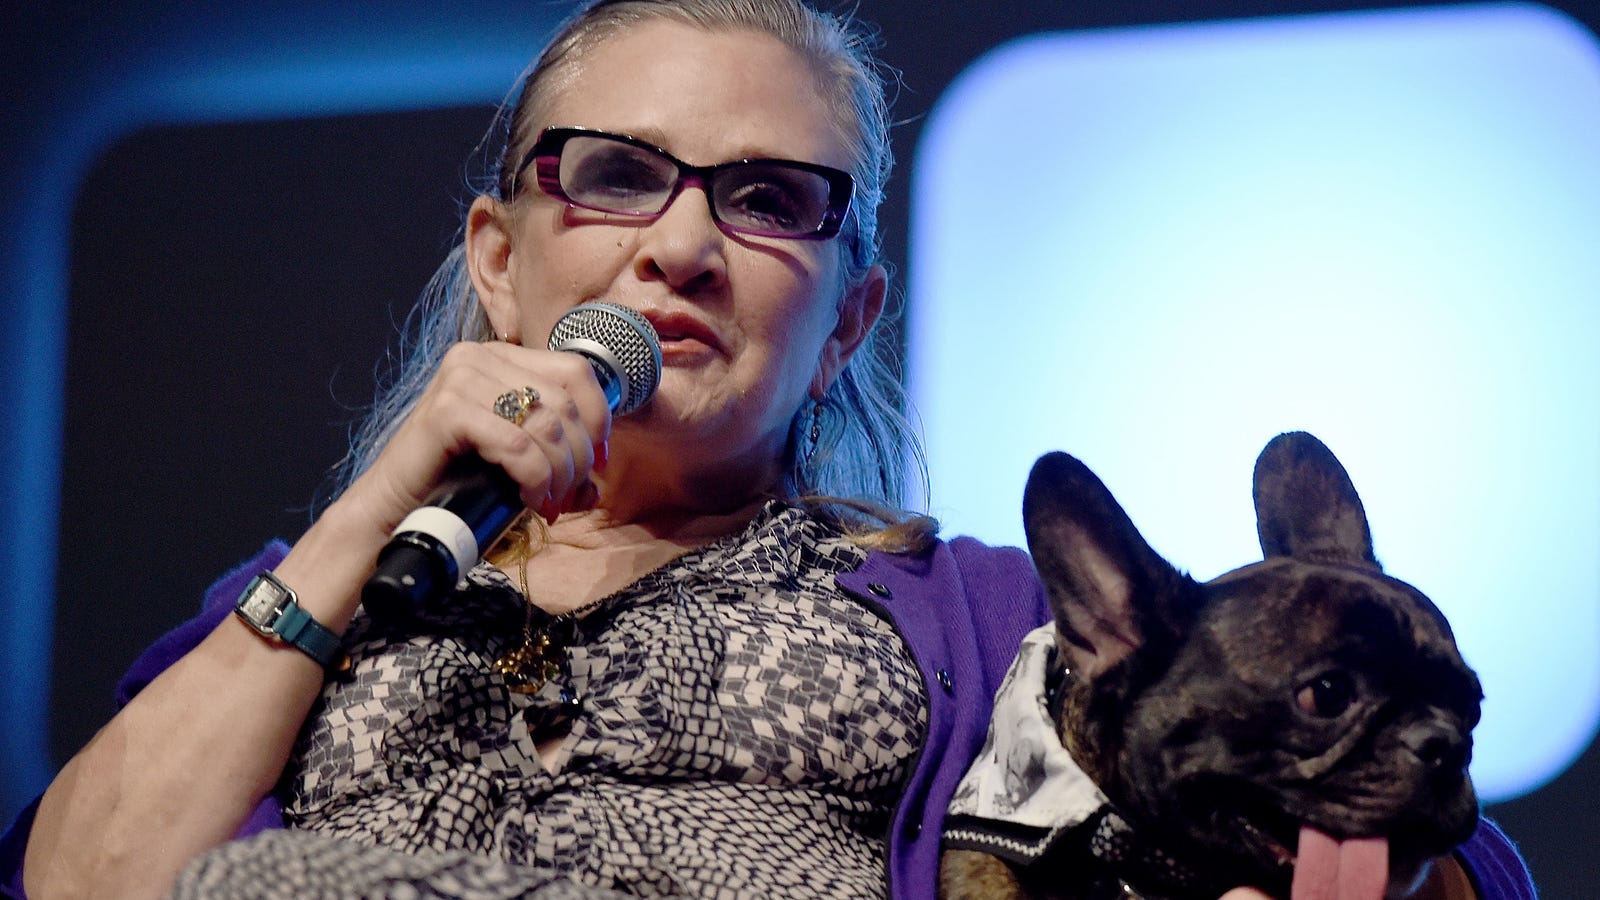 Carrie Fisher's Dog Got Emotional Seeing Her Onscreen During The Last Jedi